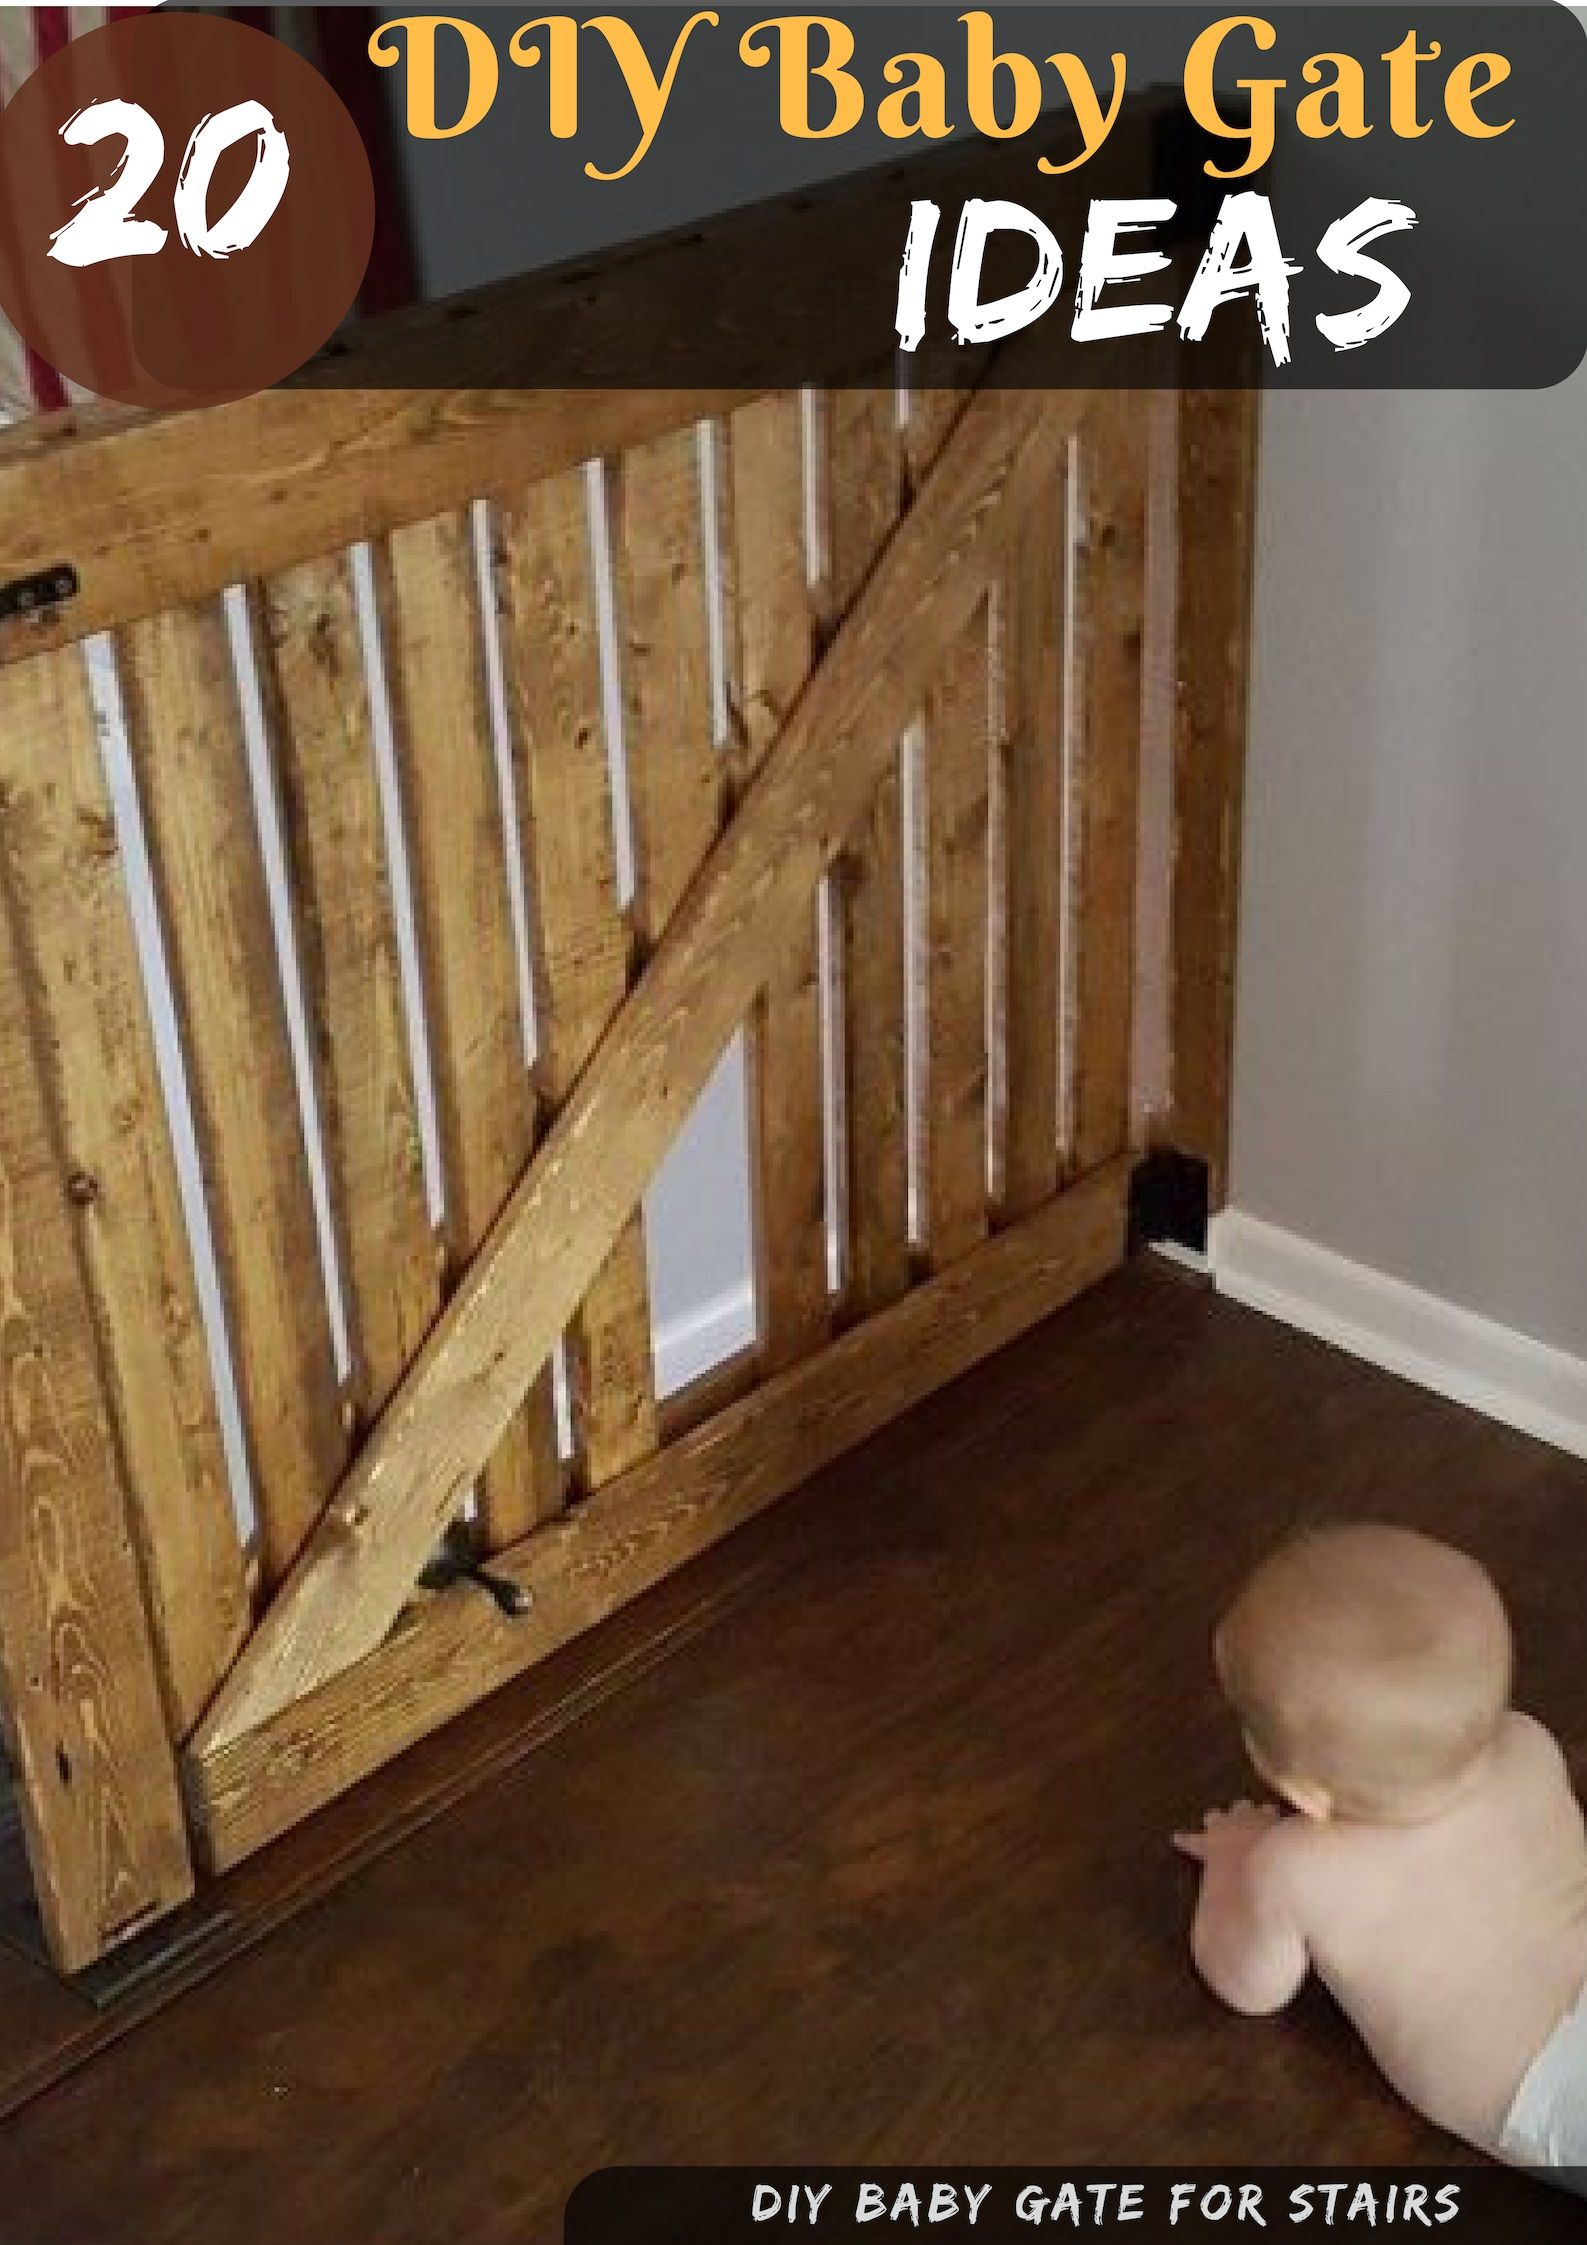 Diy Baby Gate Ideas For Stairs And Hallway Sew Fabric Gates Retractable Gates Cheap Pallet Wood Pvc And Fram Diy Baby Gate Diy Baby Stuff Summer Room Decor